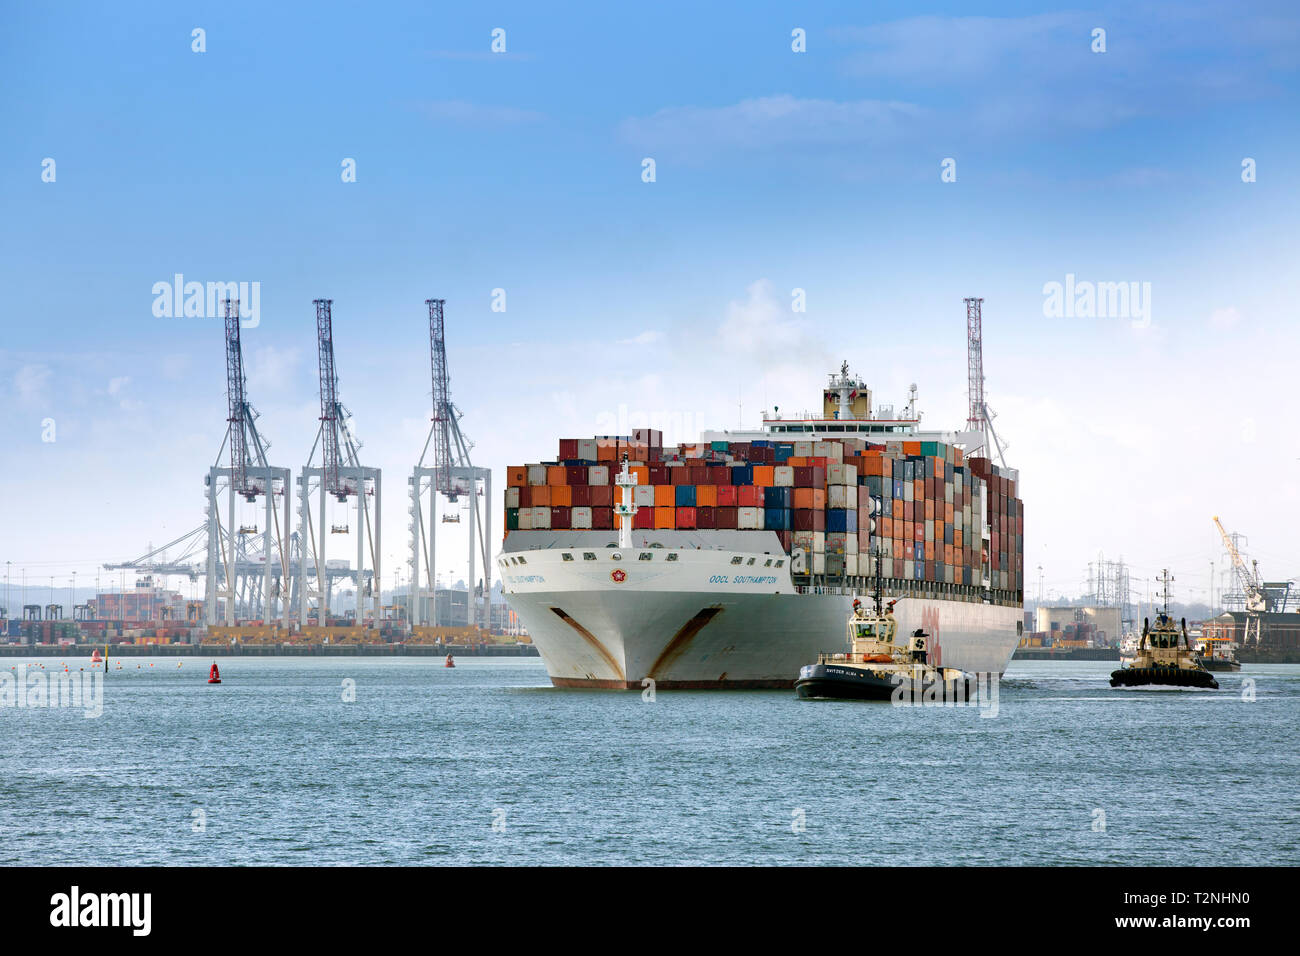 Container ship carrying export goods leaving Southampton Docks - Stock Image